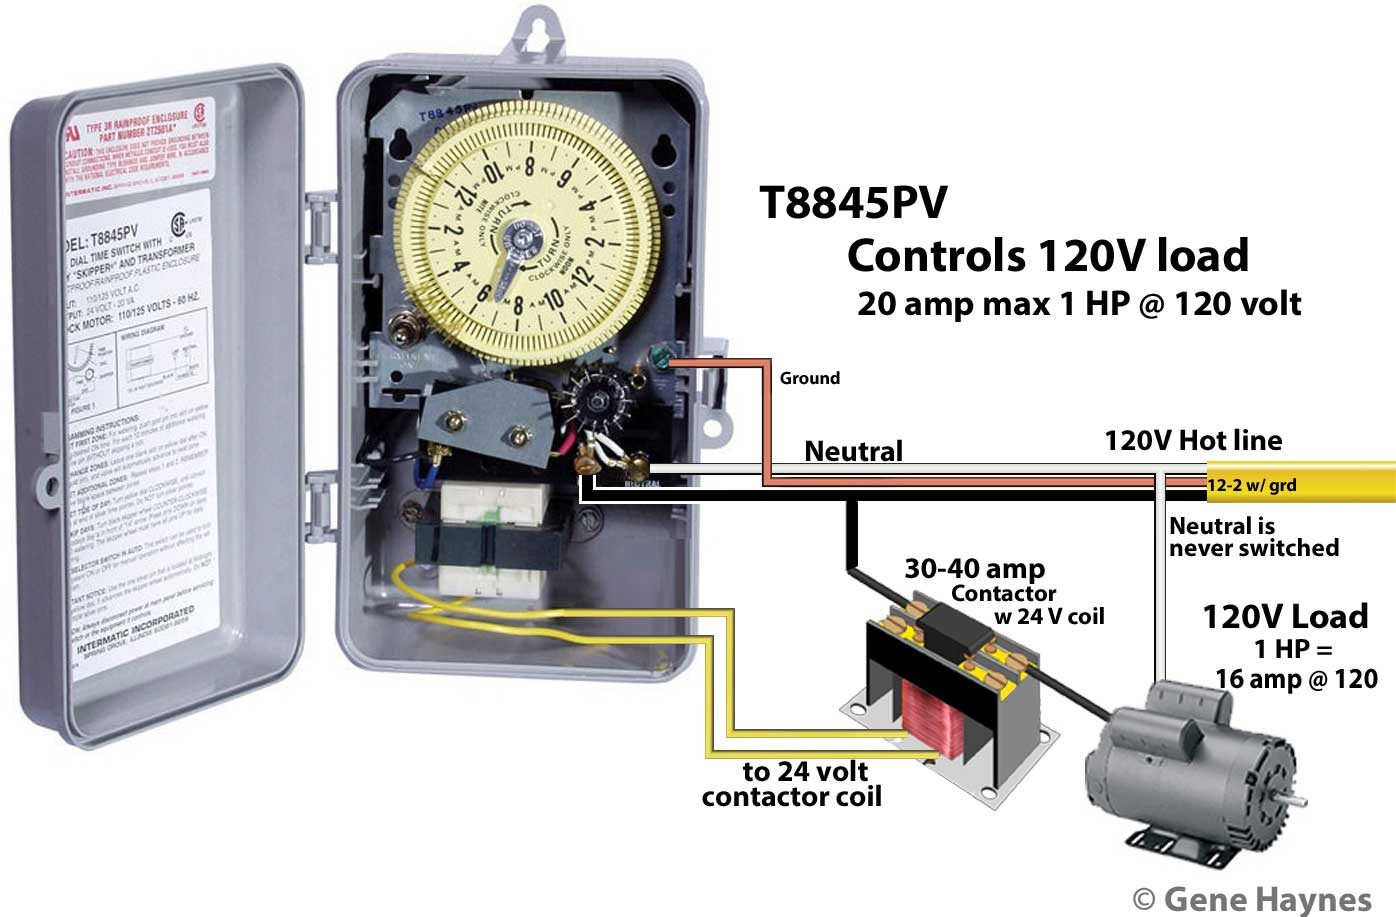 110 volt wiring diagram bulldog security rs82 how to wire intermatic sprinkler and irrigation timers manuals larger image